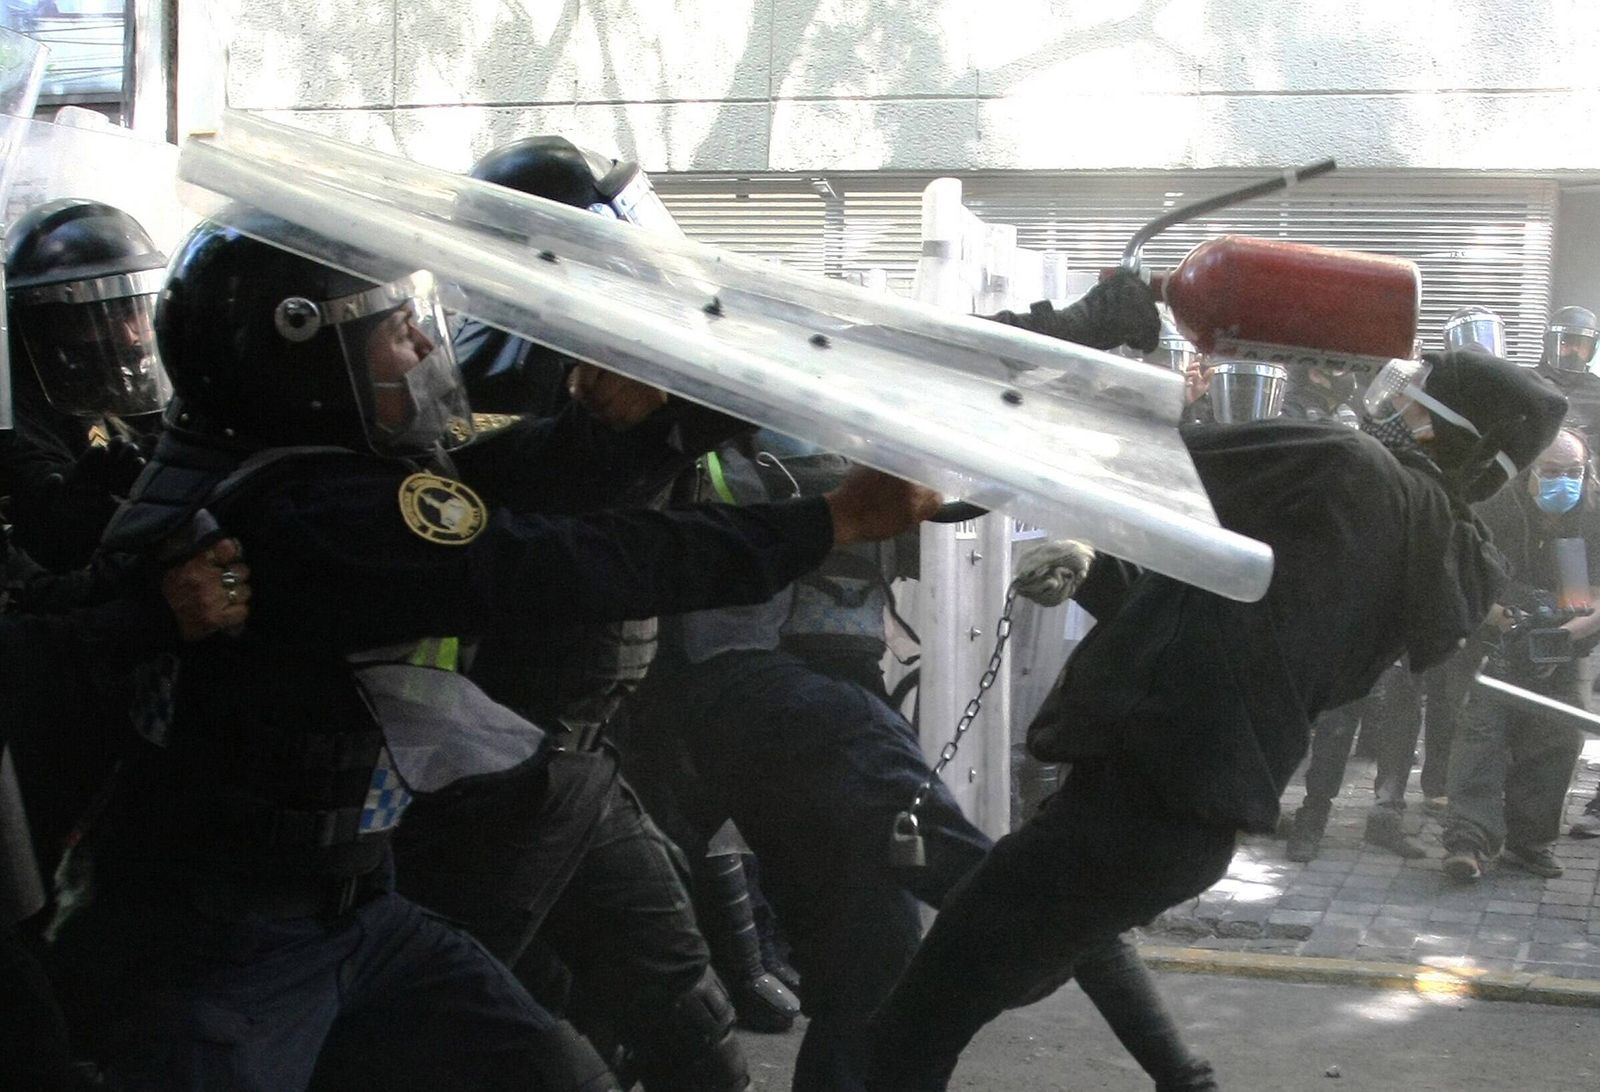 Demonstrators clash with police during a protest in front of the US Embassy in Mexico City, Mexico, 05 June 2020. Dozen